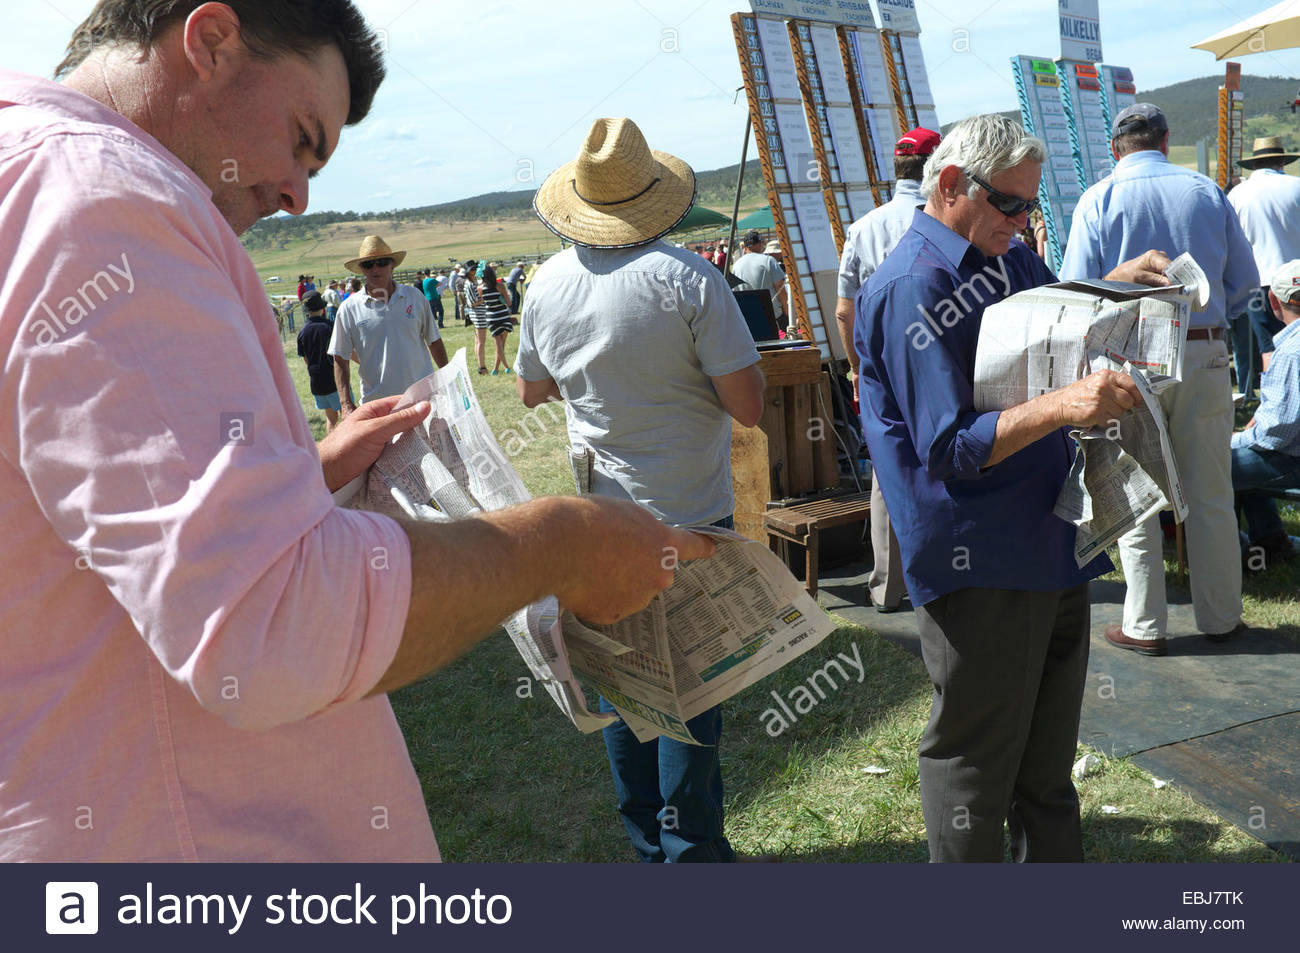 Punters reading the racing papers at the Adaminaby Races (horse racing), in the Snowy Mountains, NSW, Australia. - Stock Image